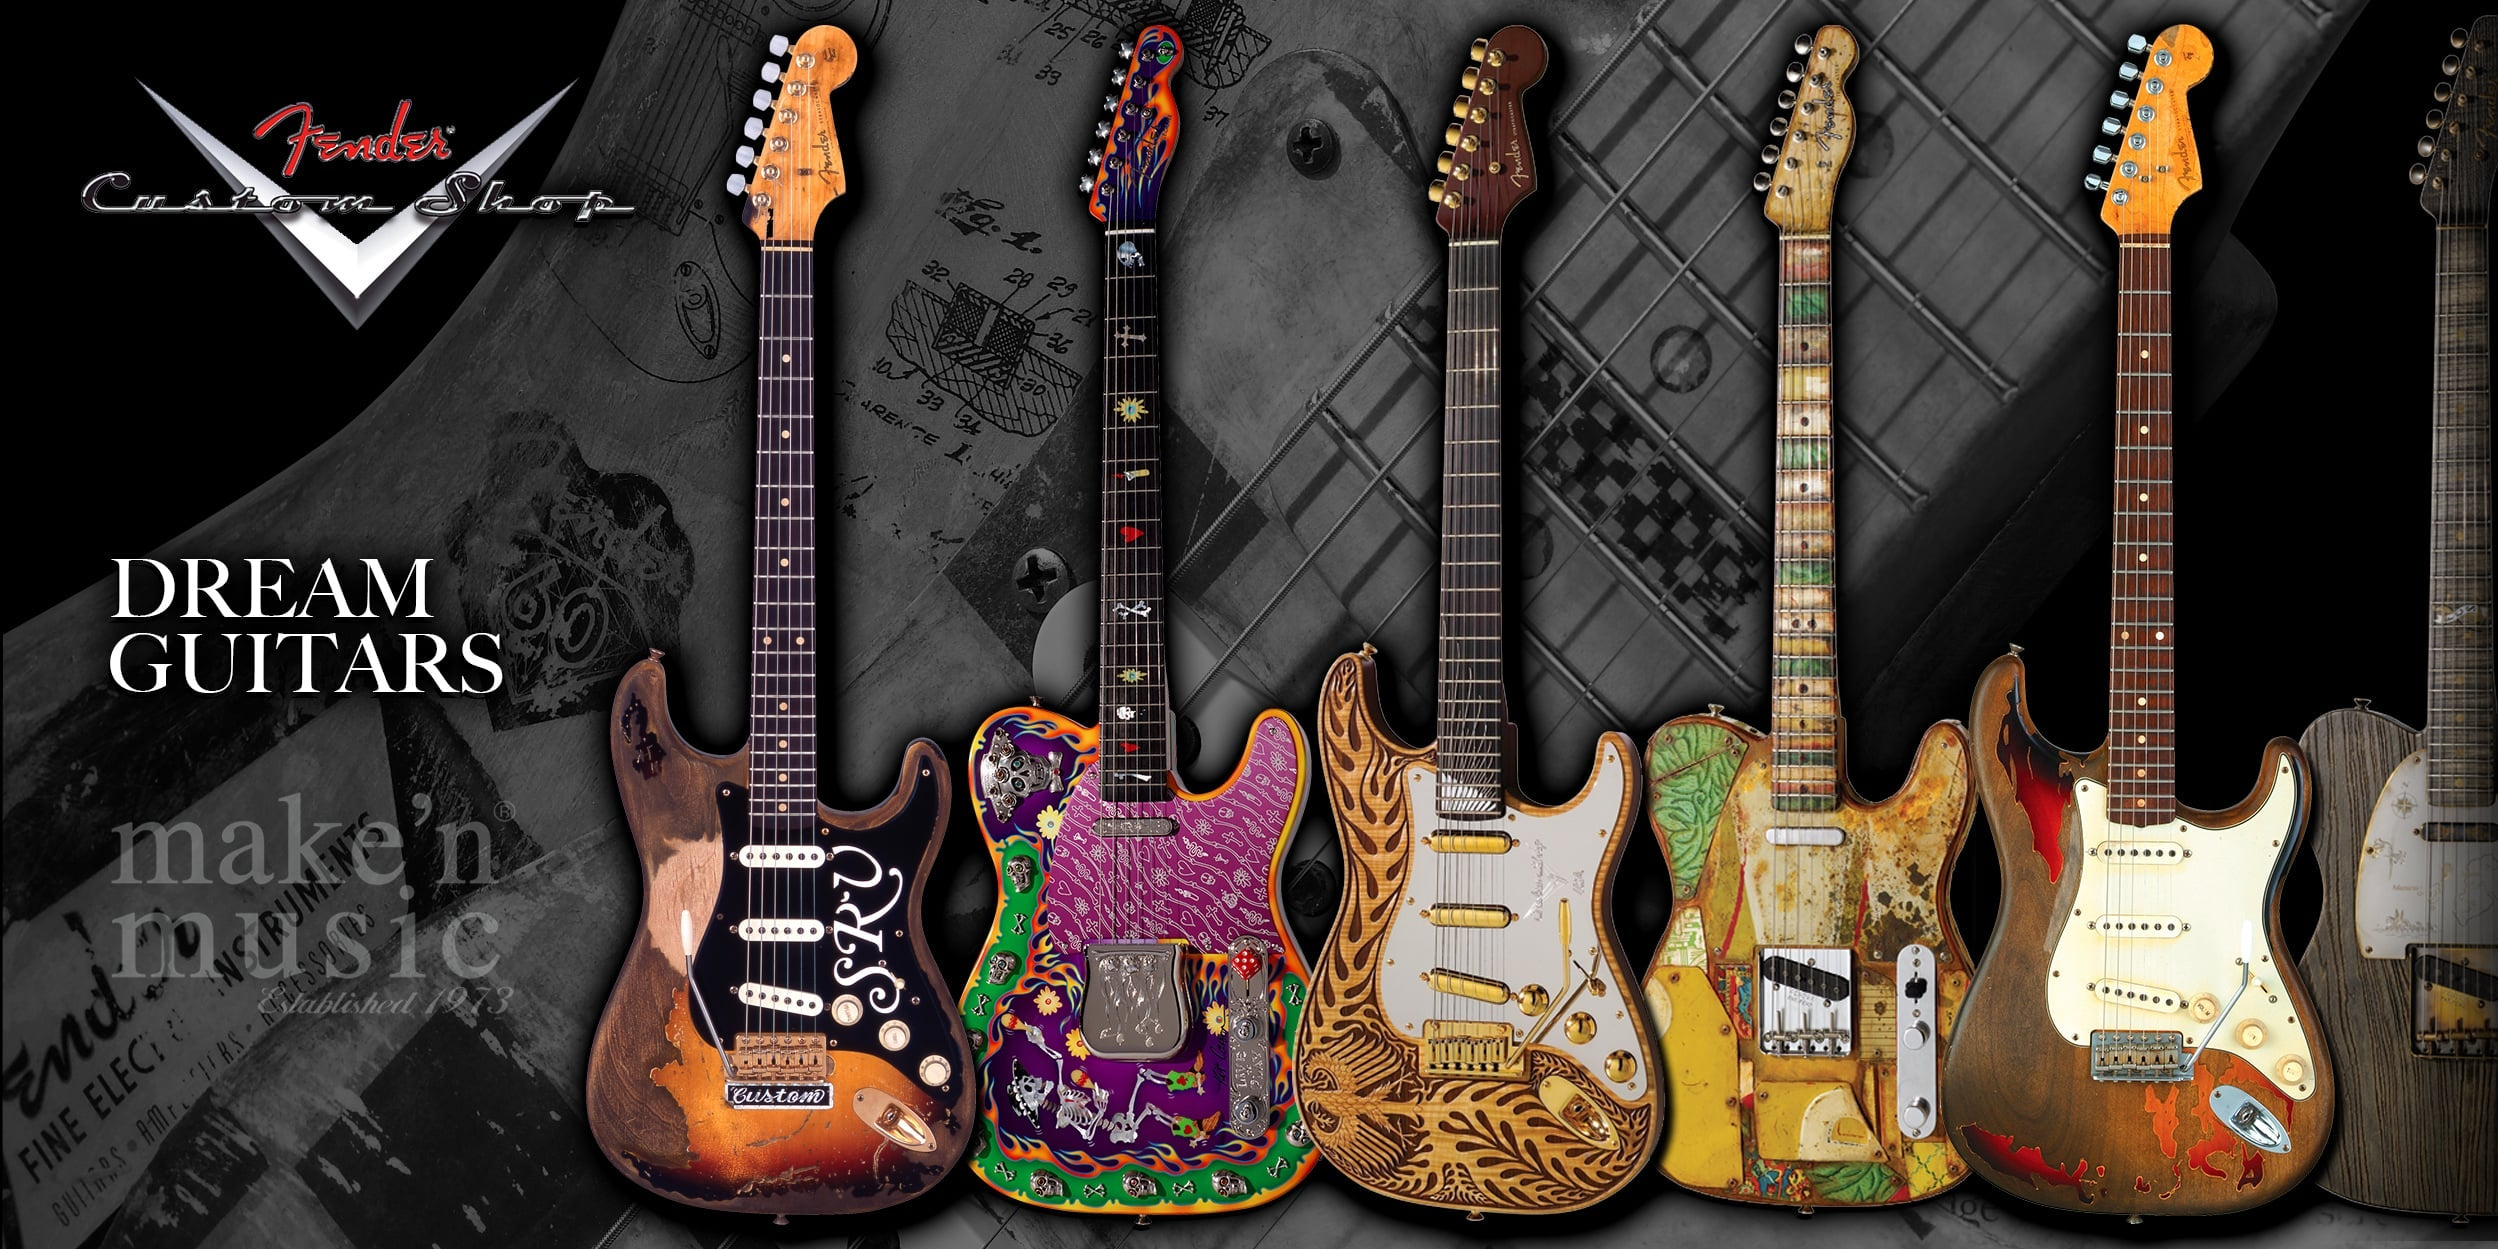 Fender Custom Shop Dream Guitars